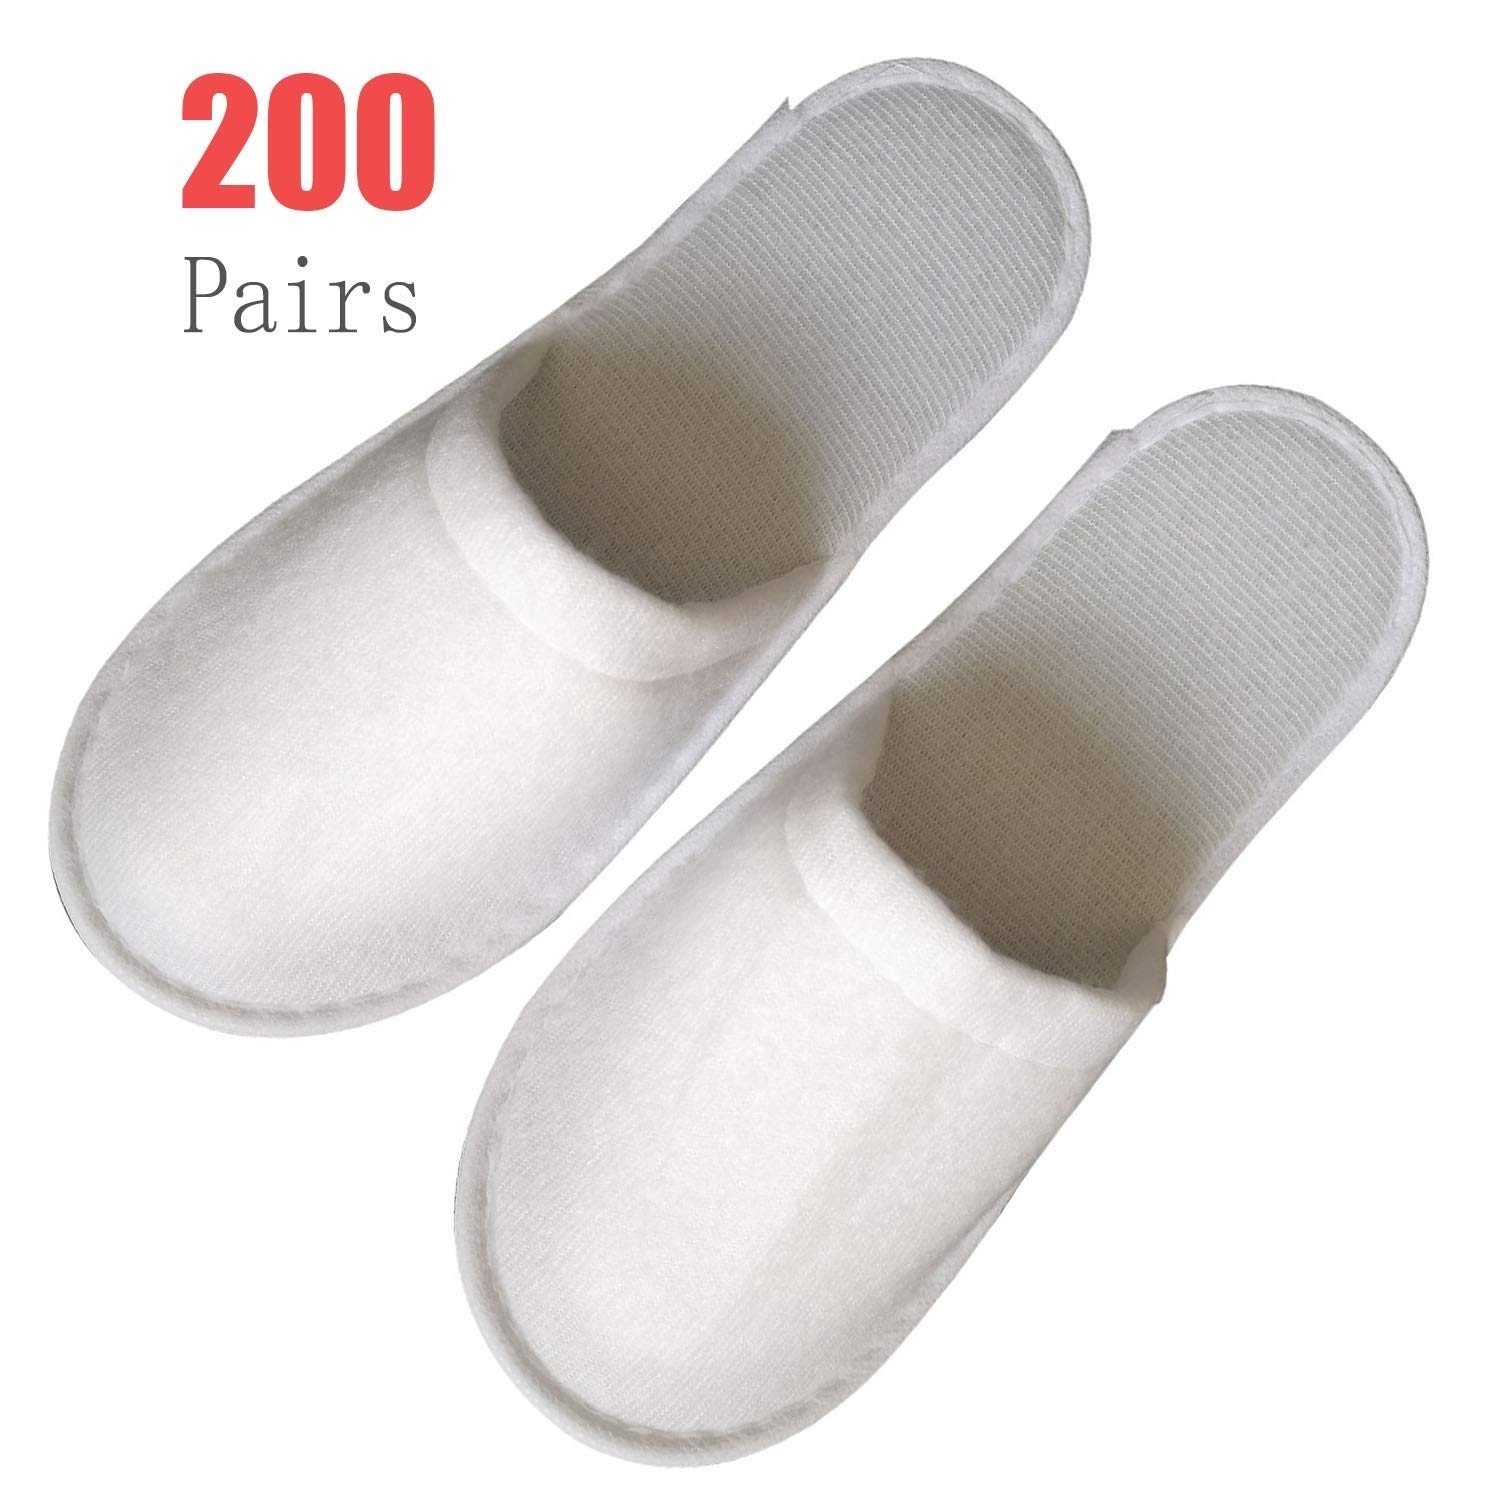 200Pairs Slippers Women and Men Disposable Portable Hotel Disposable Closed Toe Pull Plush Spa Slippers Women's Comfort Slip Waffle Slippers Men Universal Size Spa-